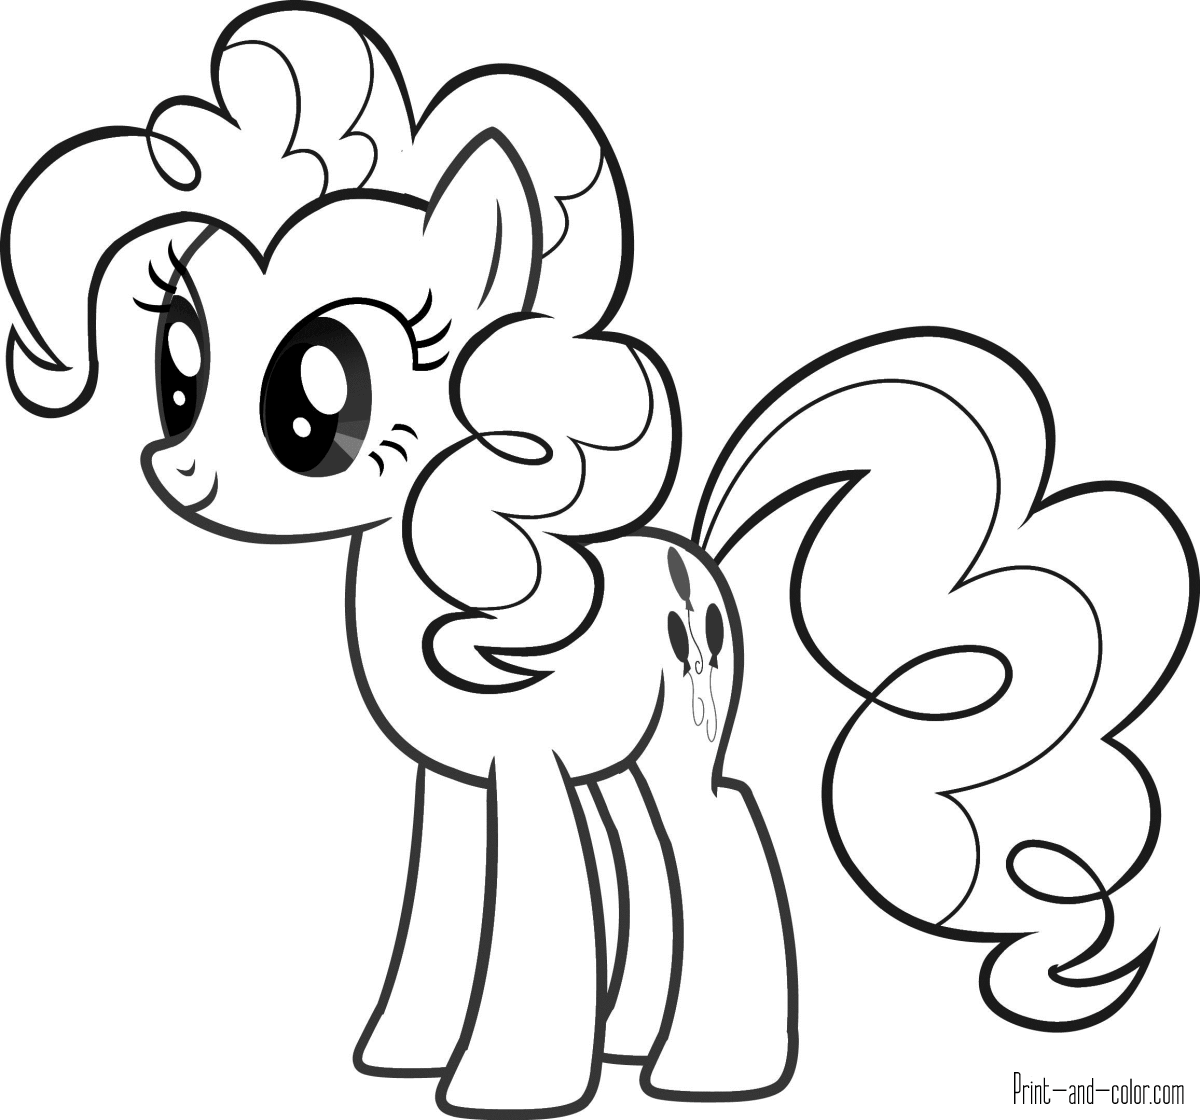 my pony coloring pages free printable my little pony coloring pages for kids coloring pages my pony